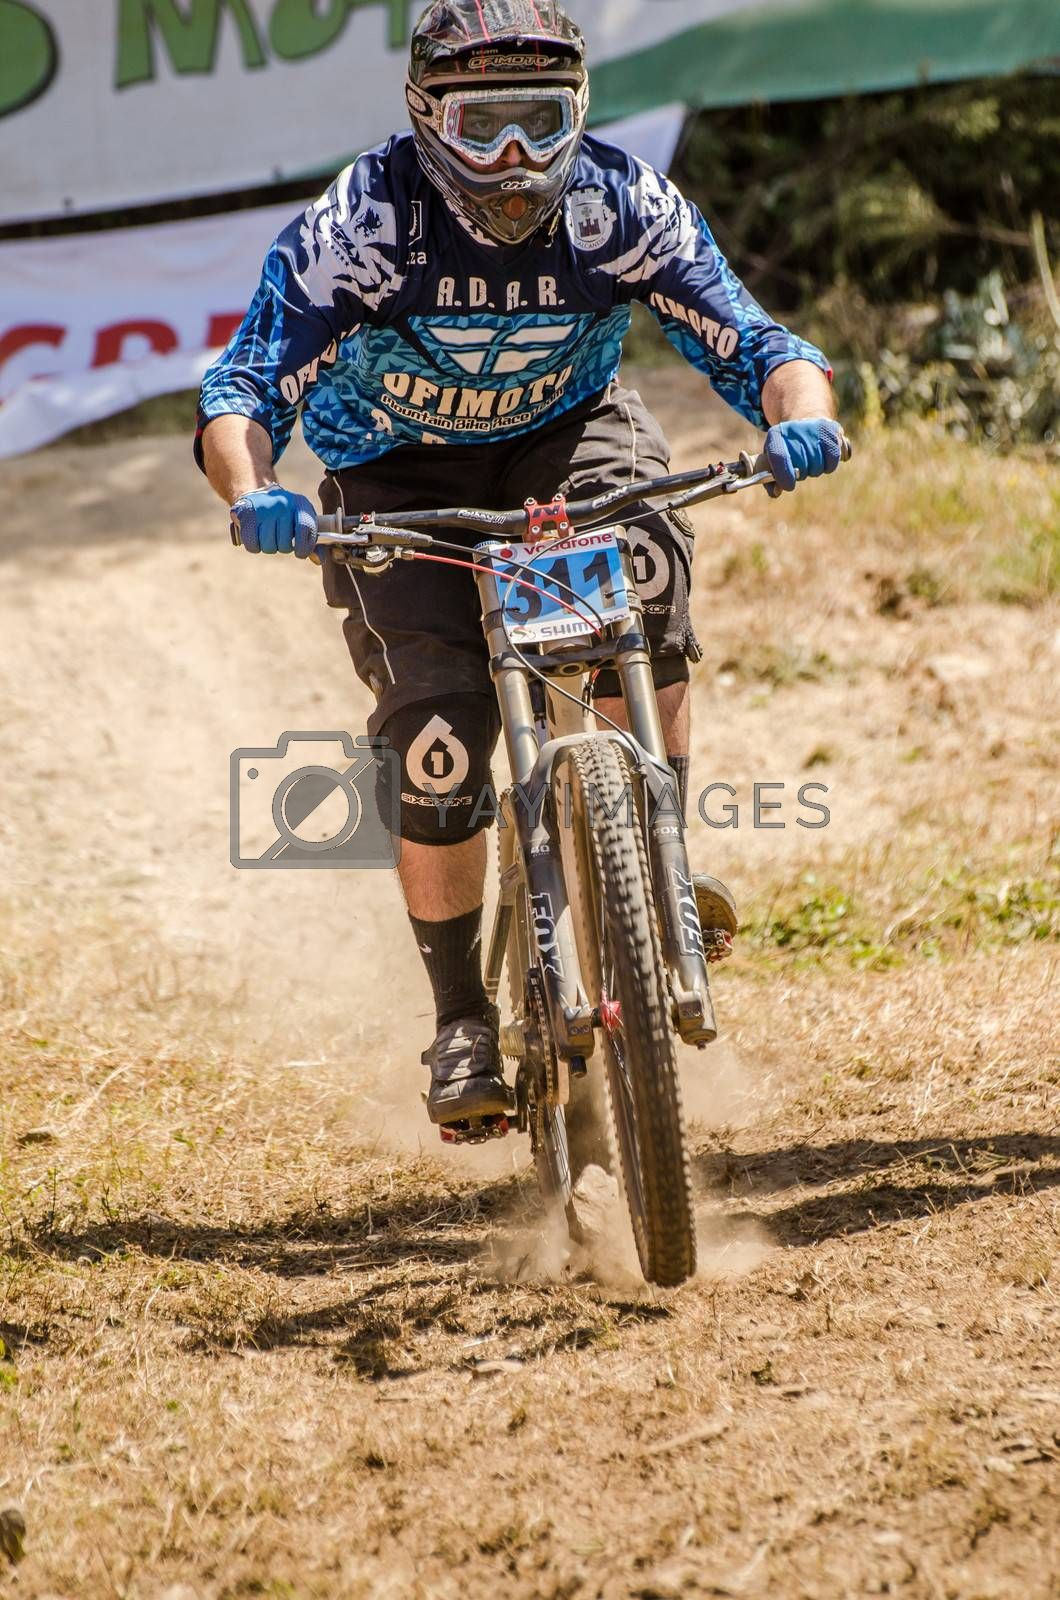 GOIS, PORTUGAL - JUNE 23: Nuno Lopes during the 4th Stage of the Taca de Portugal Downhill Vodafone on june 23, 2013 in Gois, Portugal.